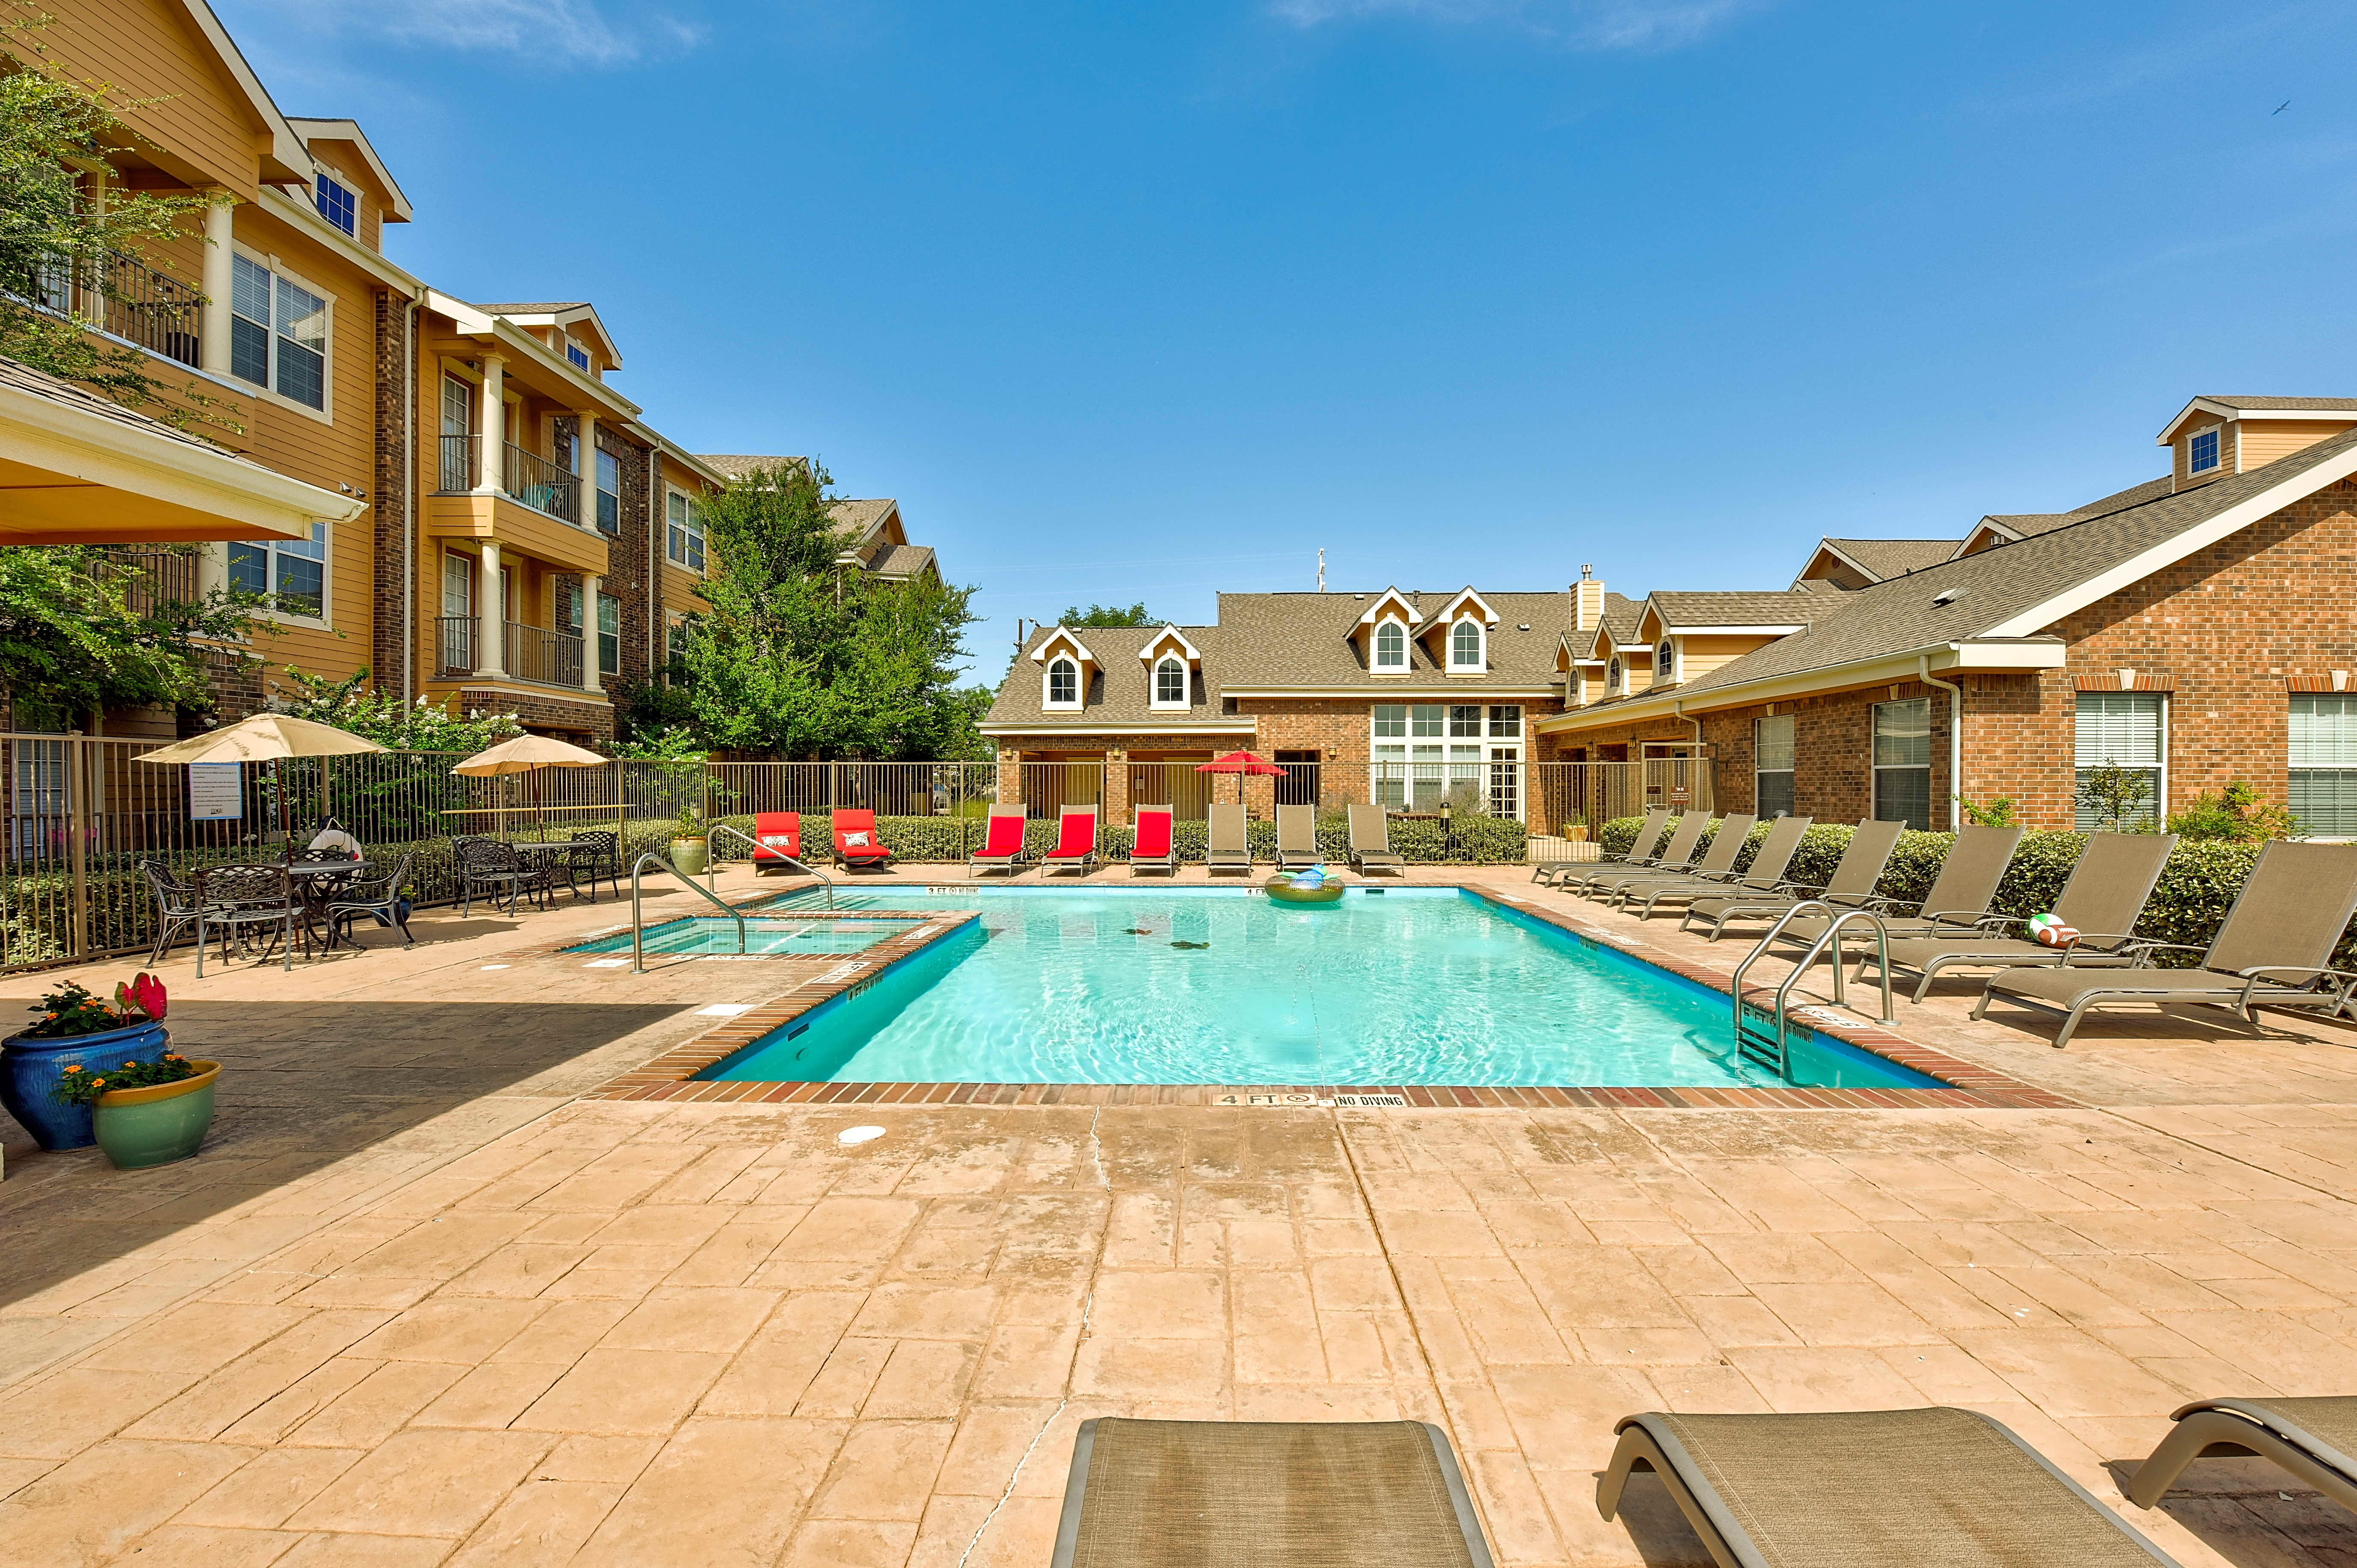 Apartments Near Texas Tech The Edge for Texas Tech University Students in Lubbock, TX